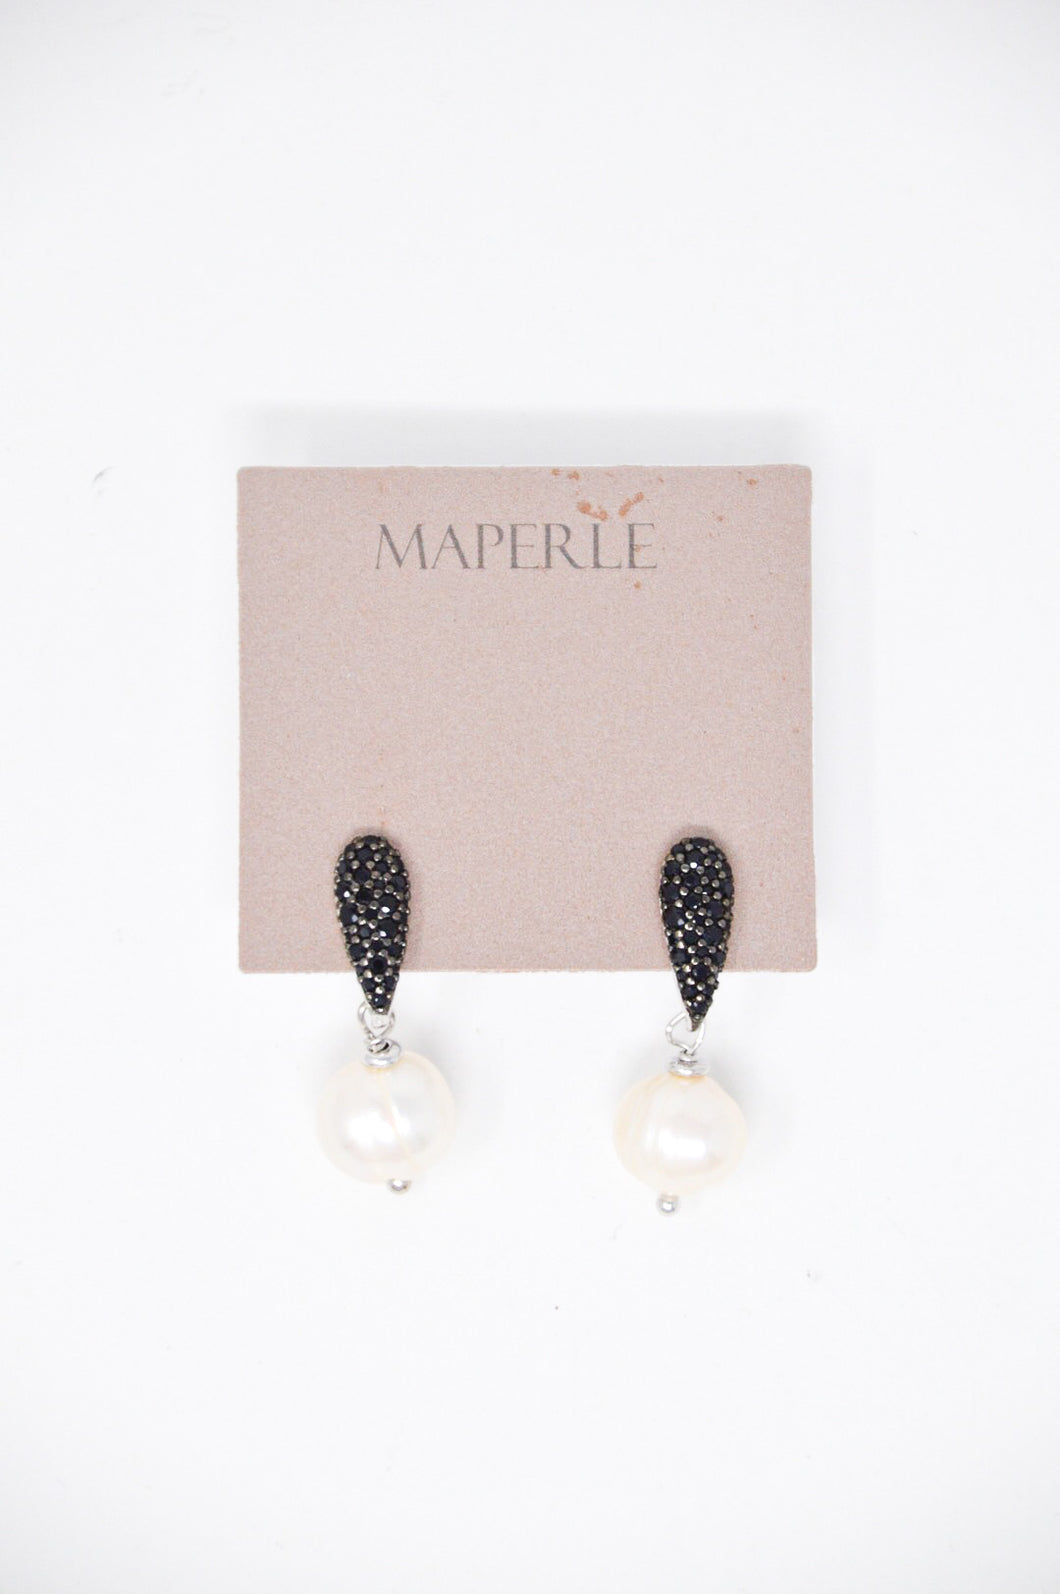 Maperle S362970-RD